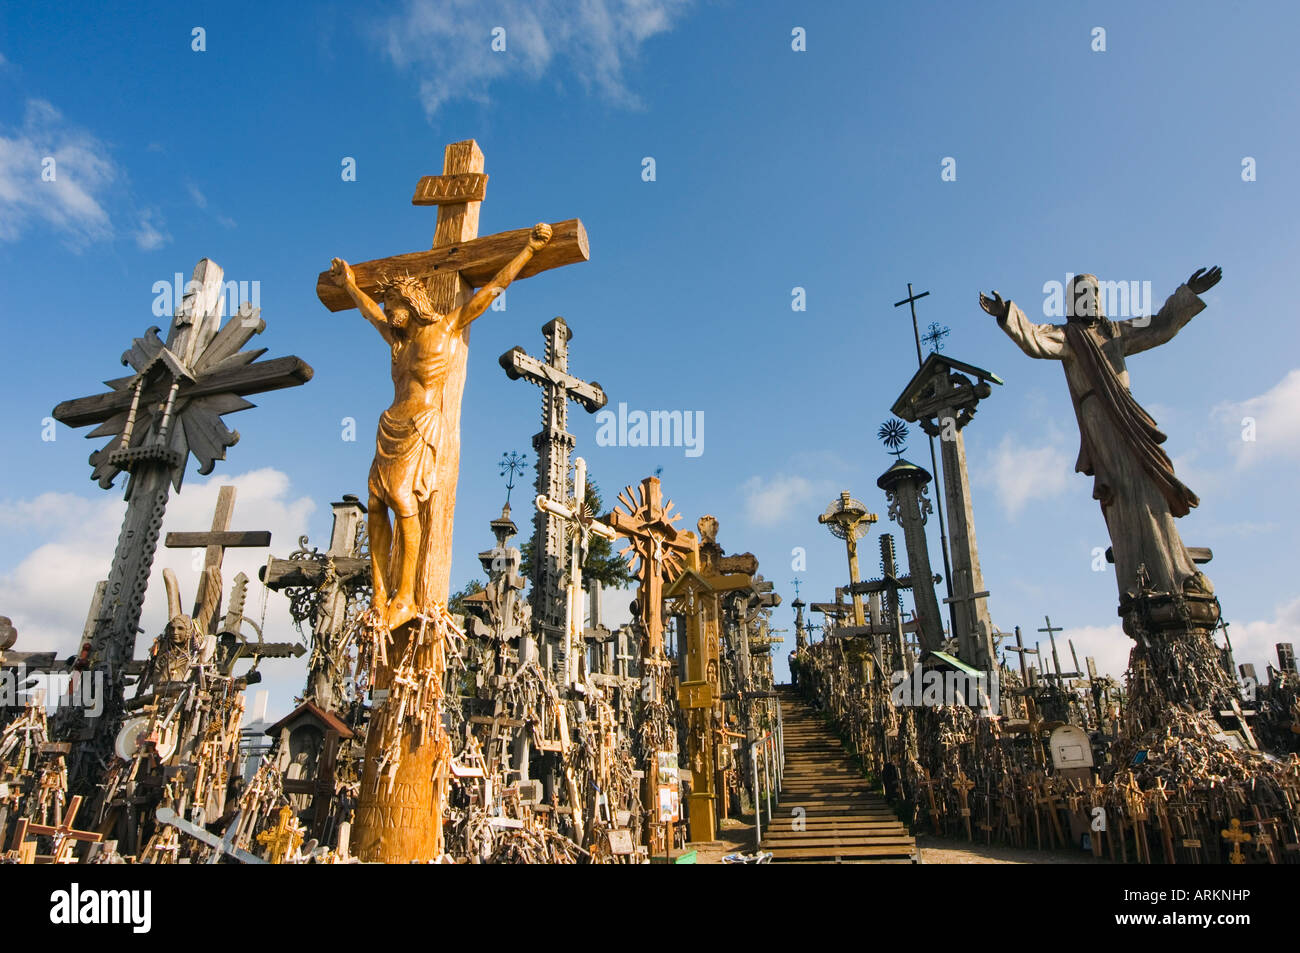 Hill of Crosses, thousands of memorial crosses, a tradition of planting crosses since the 14th century, Lithuania, - Stock Image